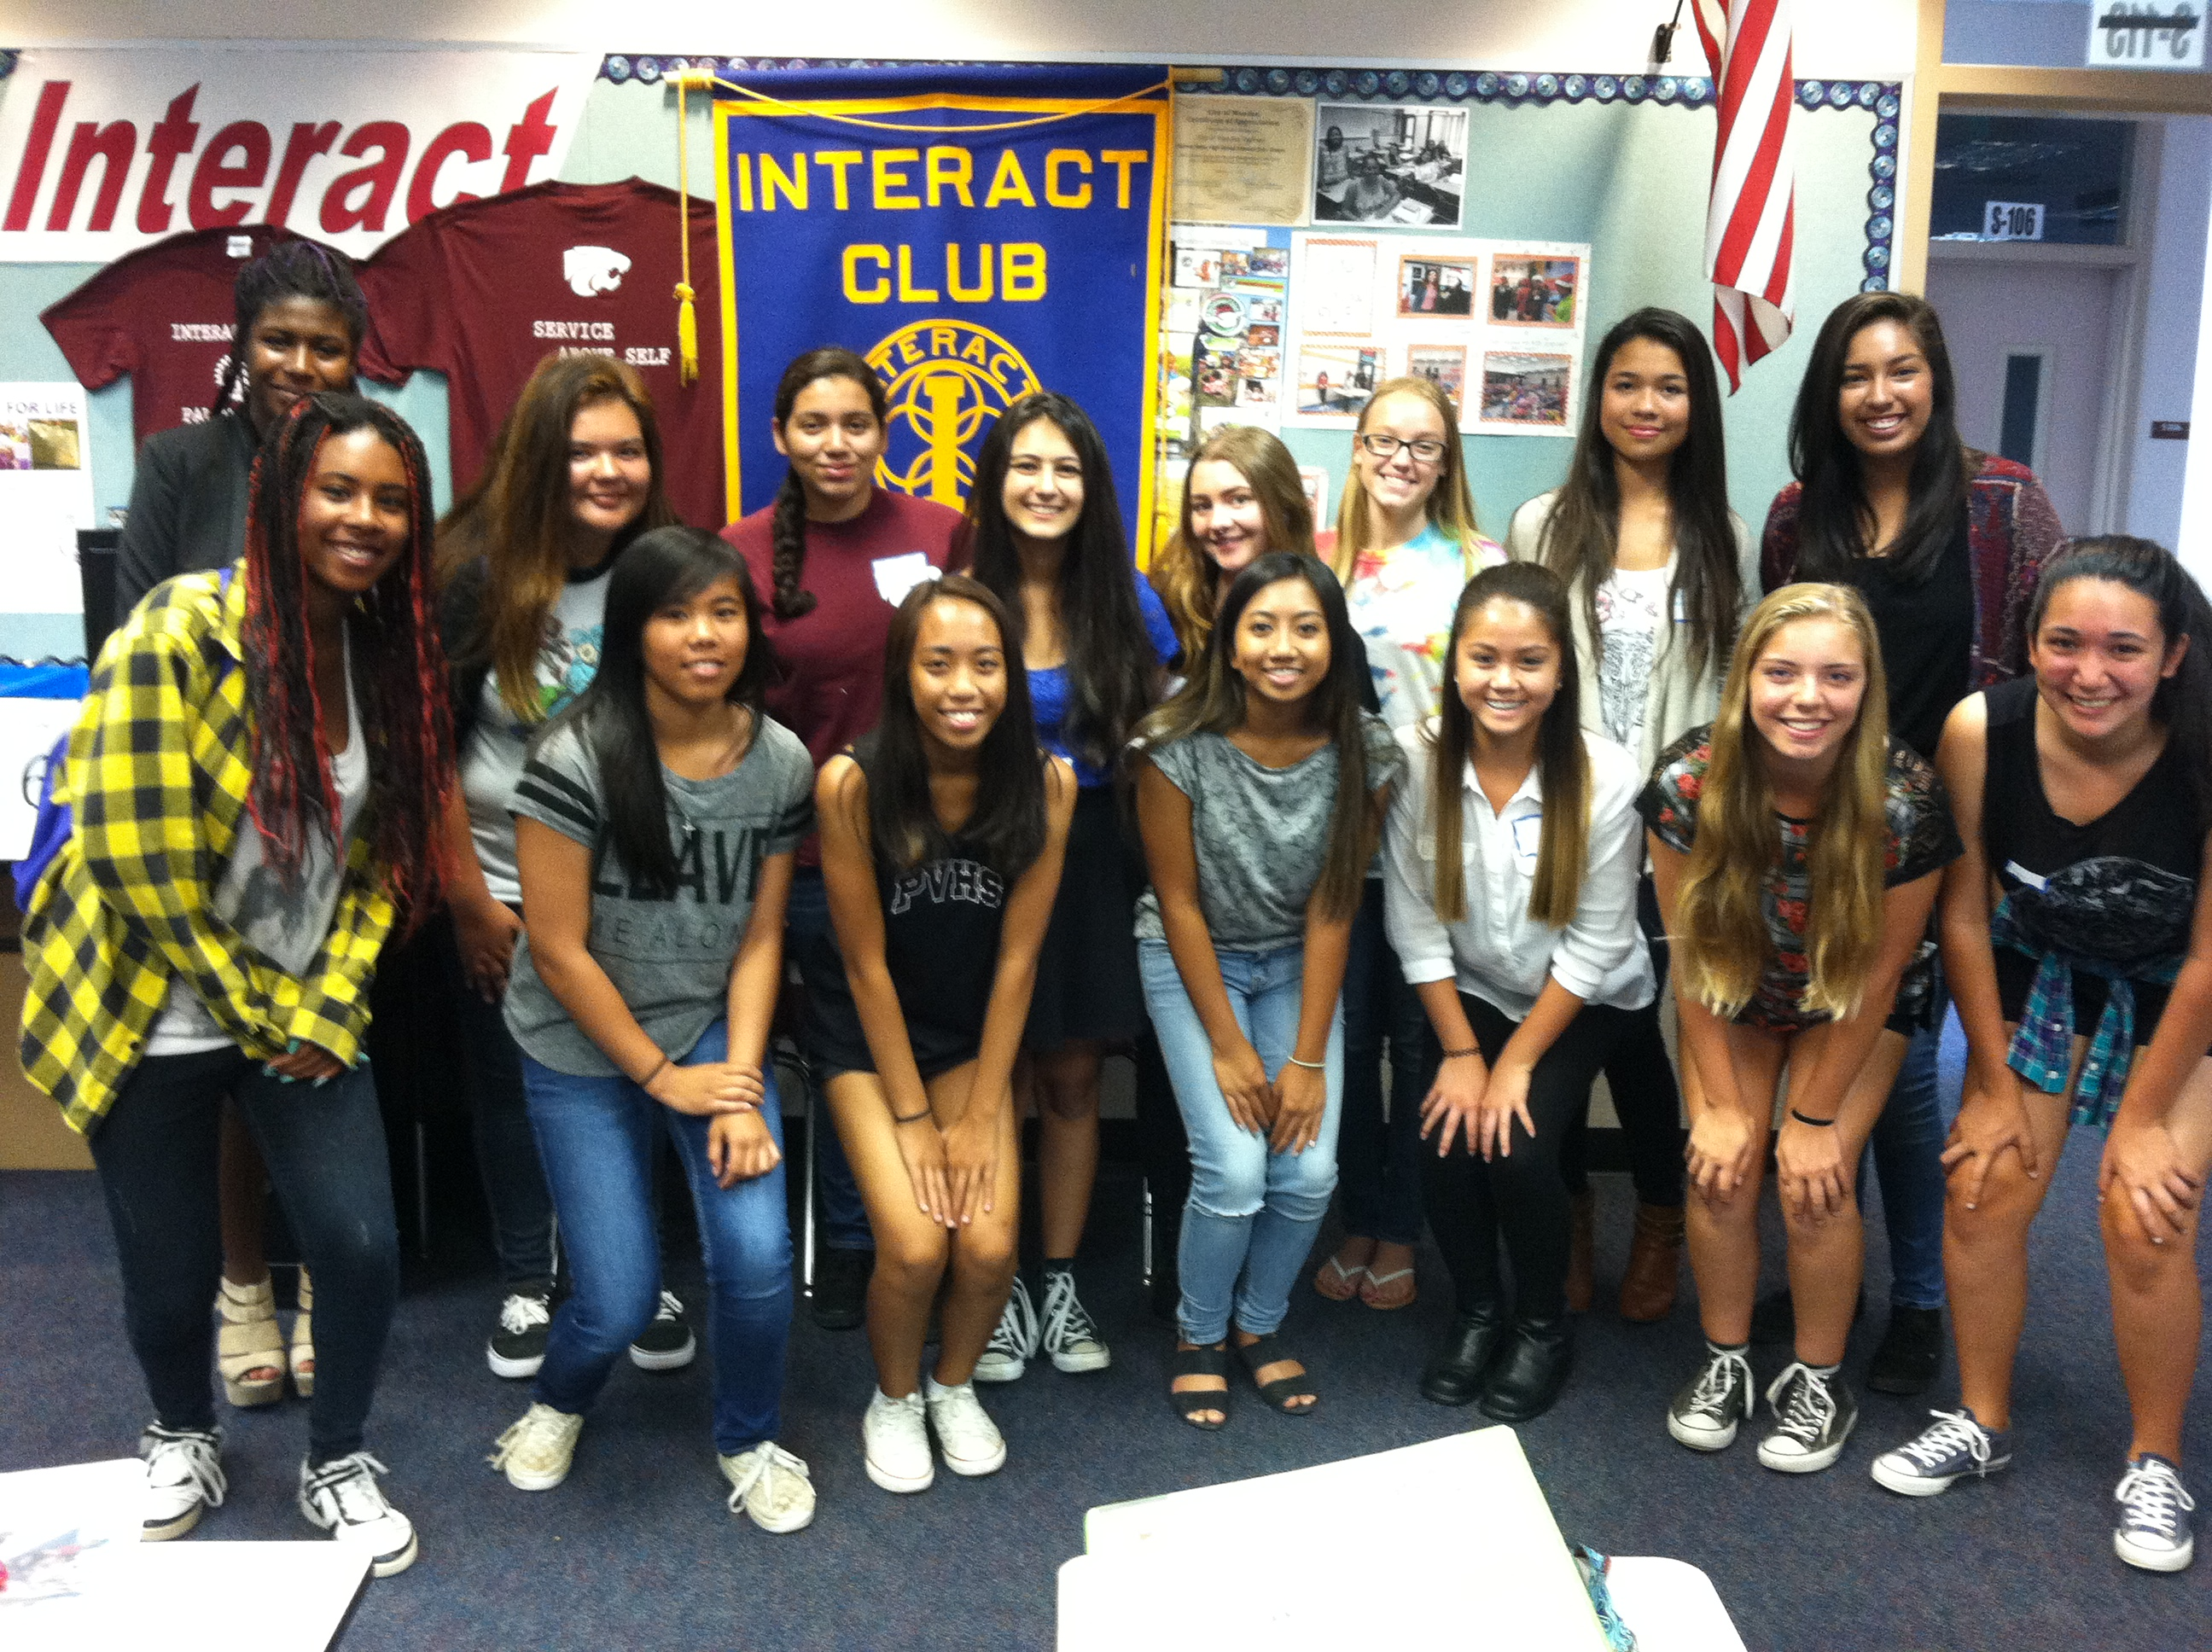 The Interact Club Photo7